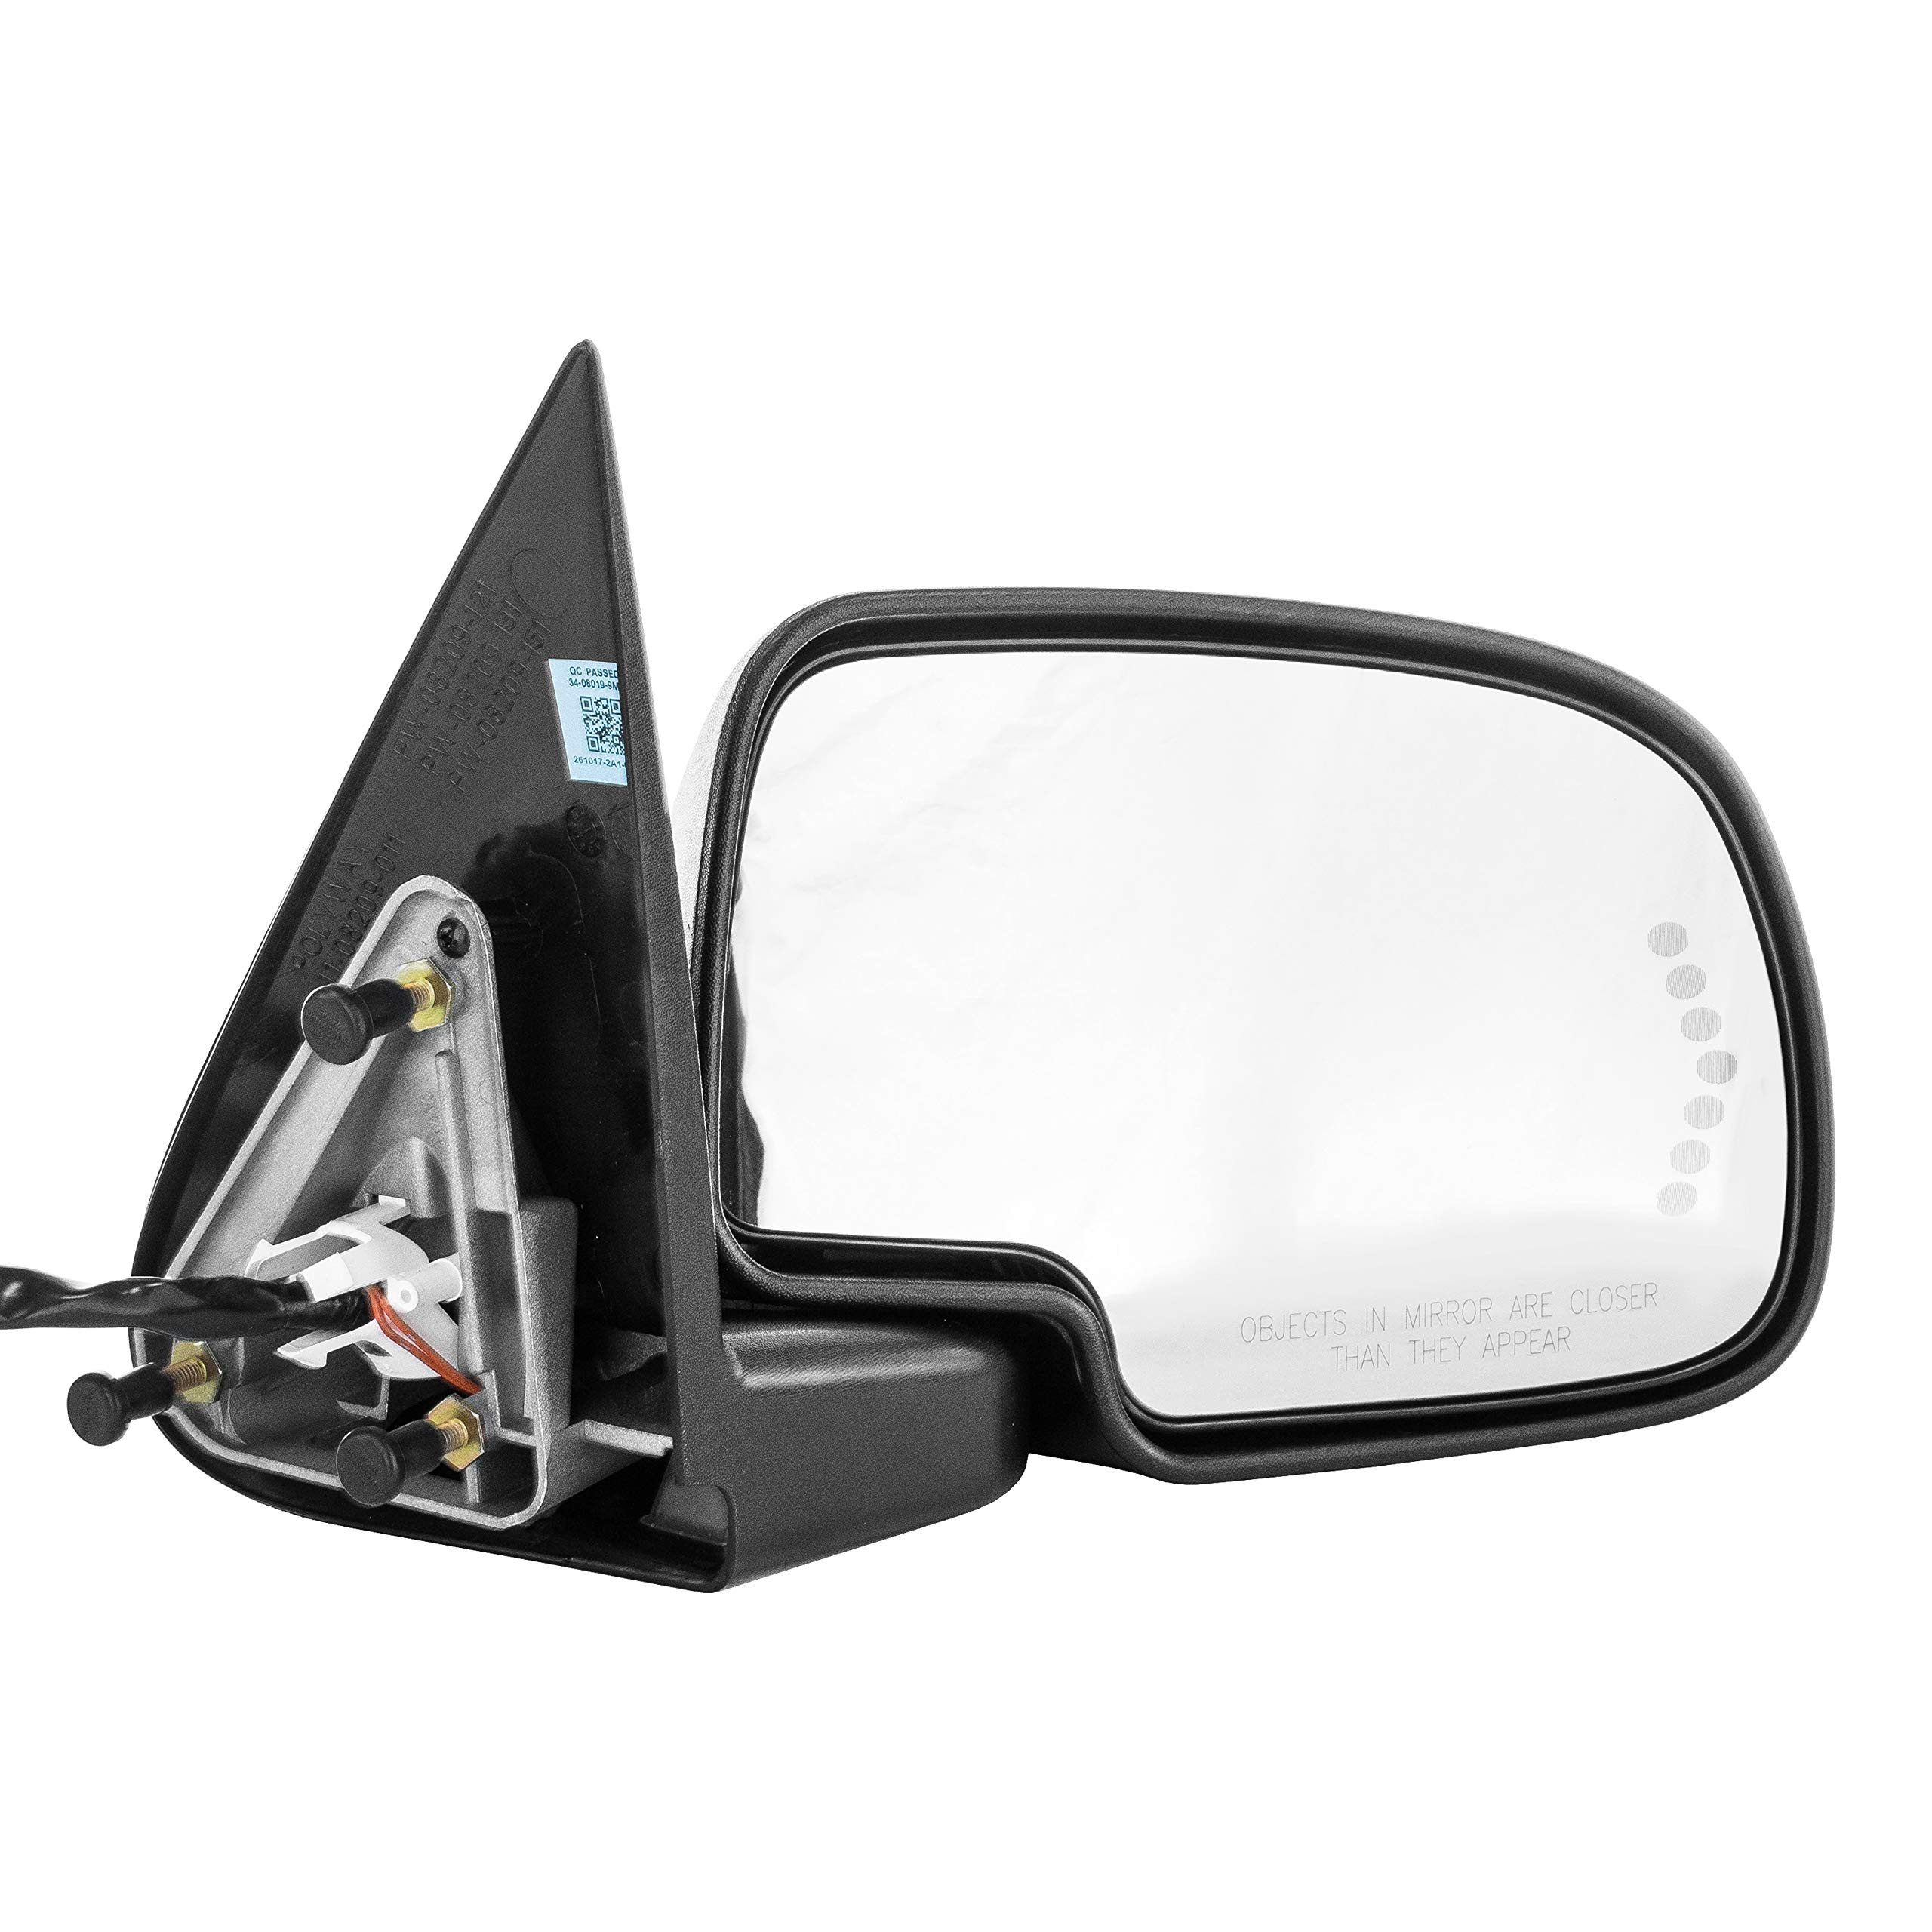 Right Passenger Side Door Mirror Heated Power-Folding - Chevy Silverado Suburban Tahoe Avalanche GMC Sierra 1500 2500 3500 Yukon 2000 2001 2002 2003 2004 2005 2006 2007 - CHECK FITMENT IN DESCRIPTION